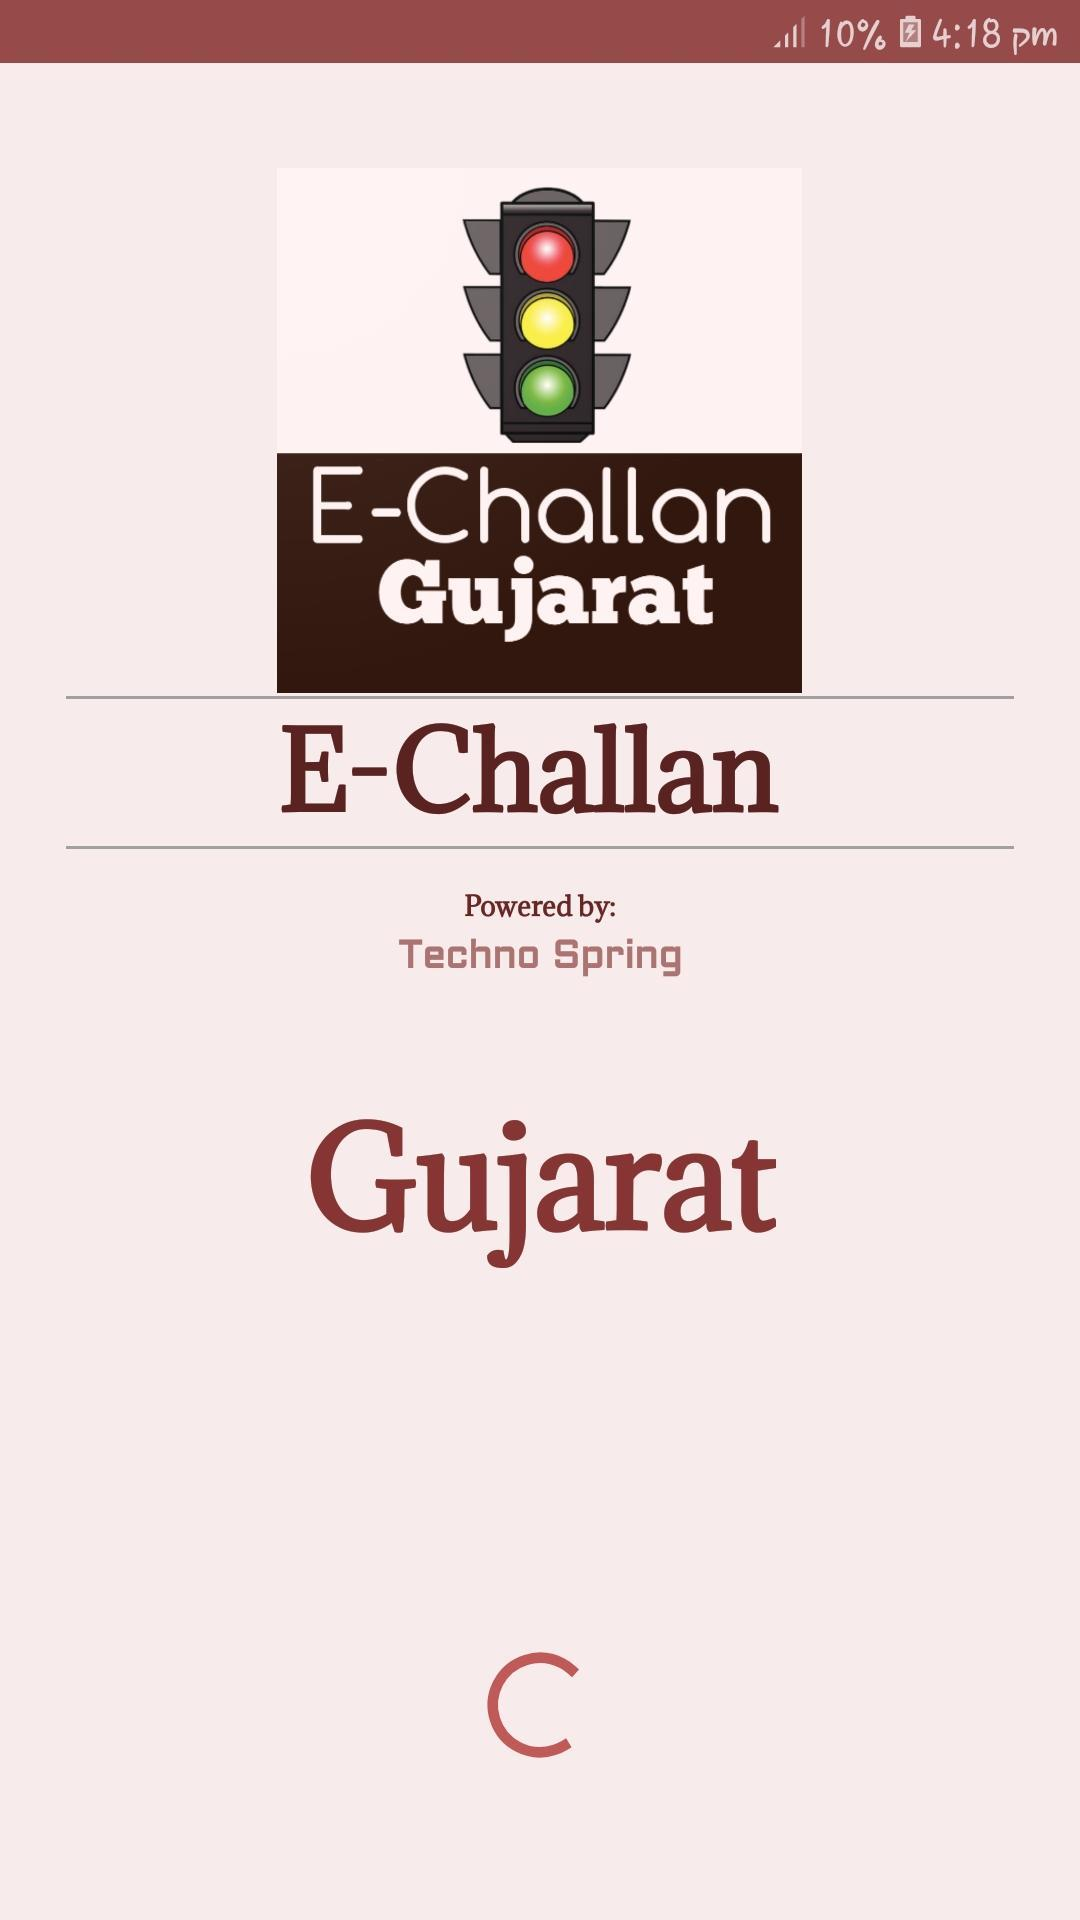 E-Challan Gujarat for Android - APK Download